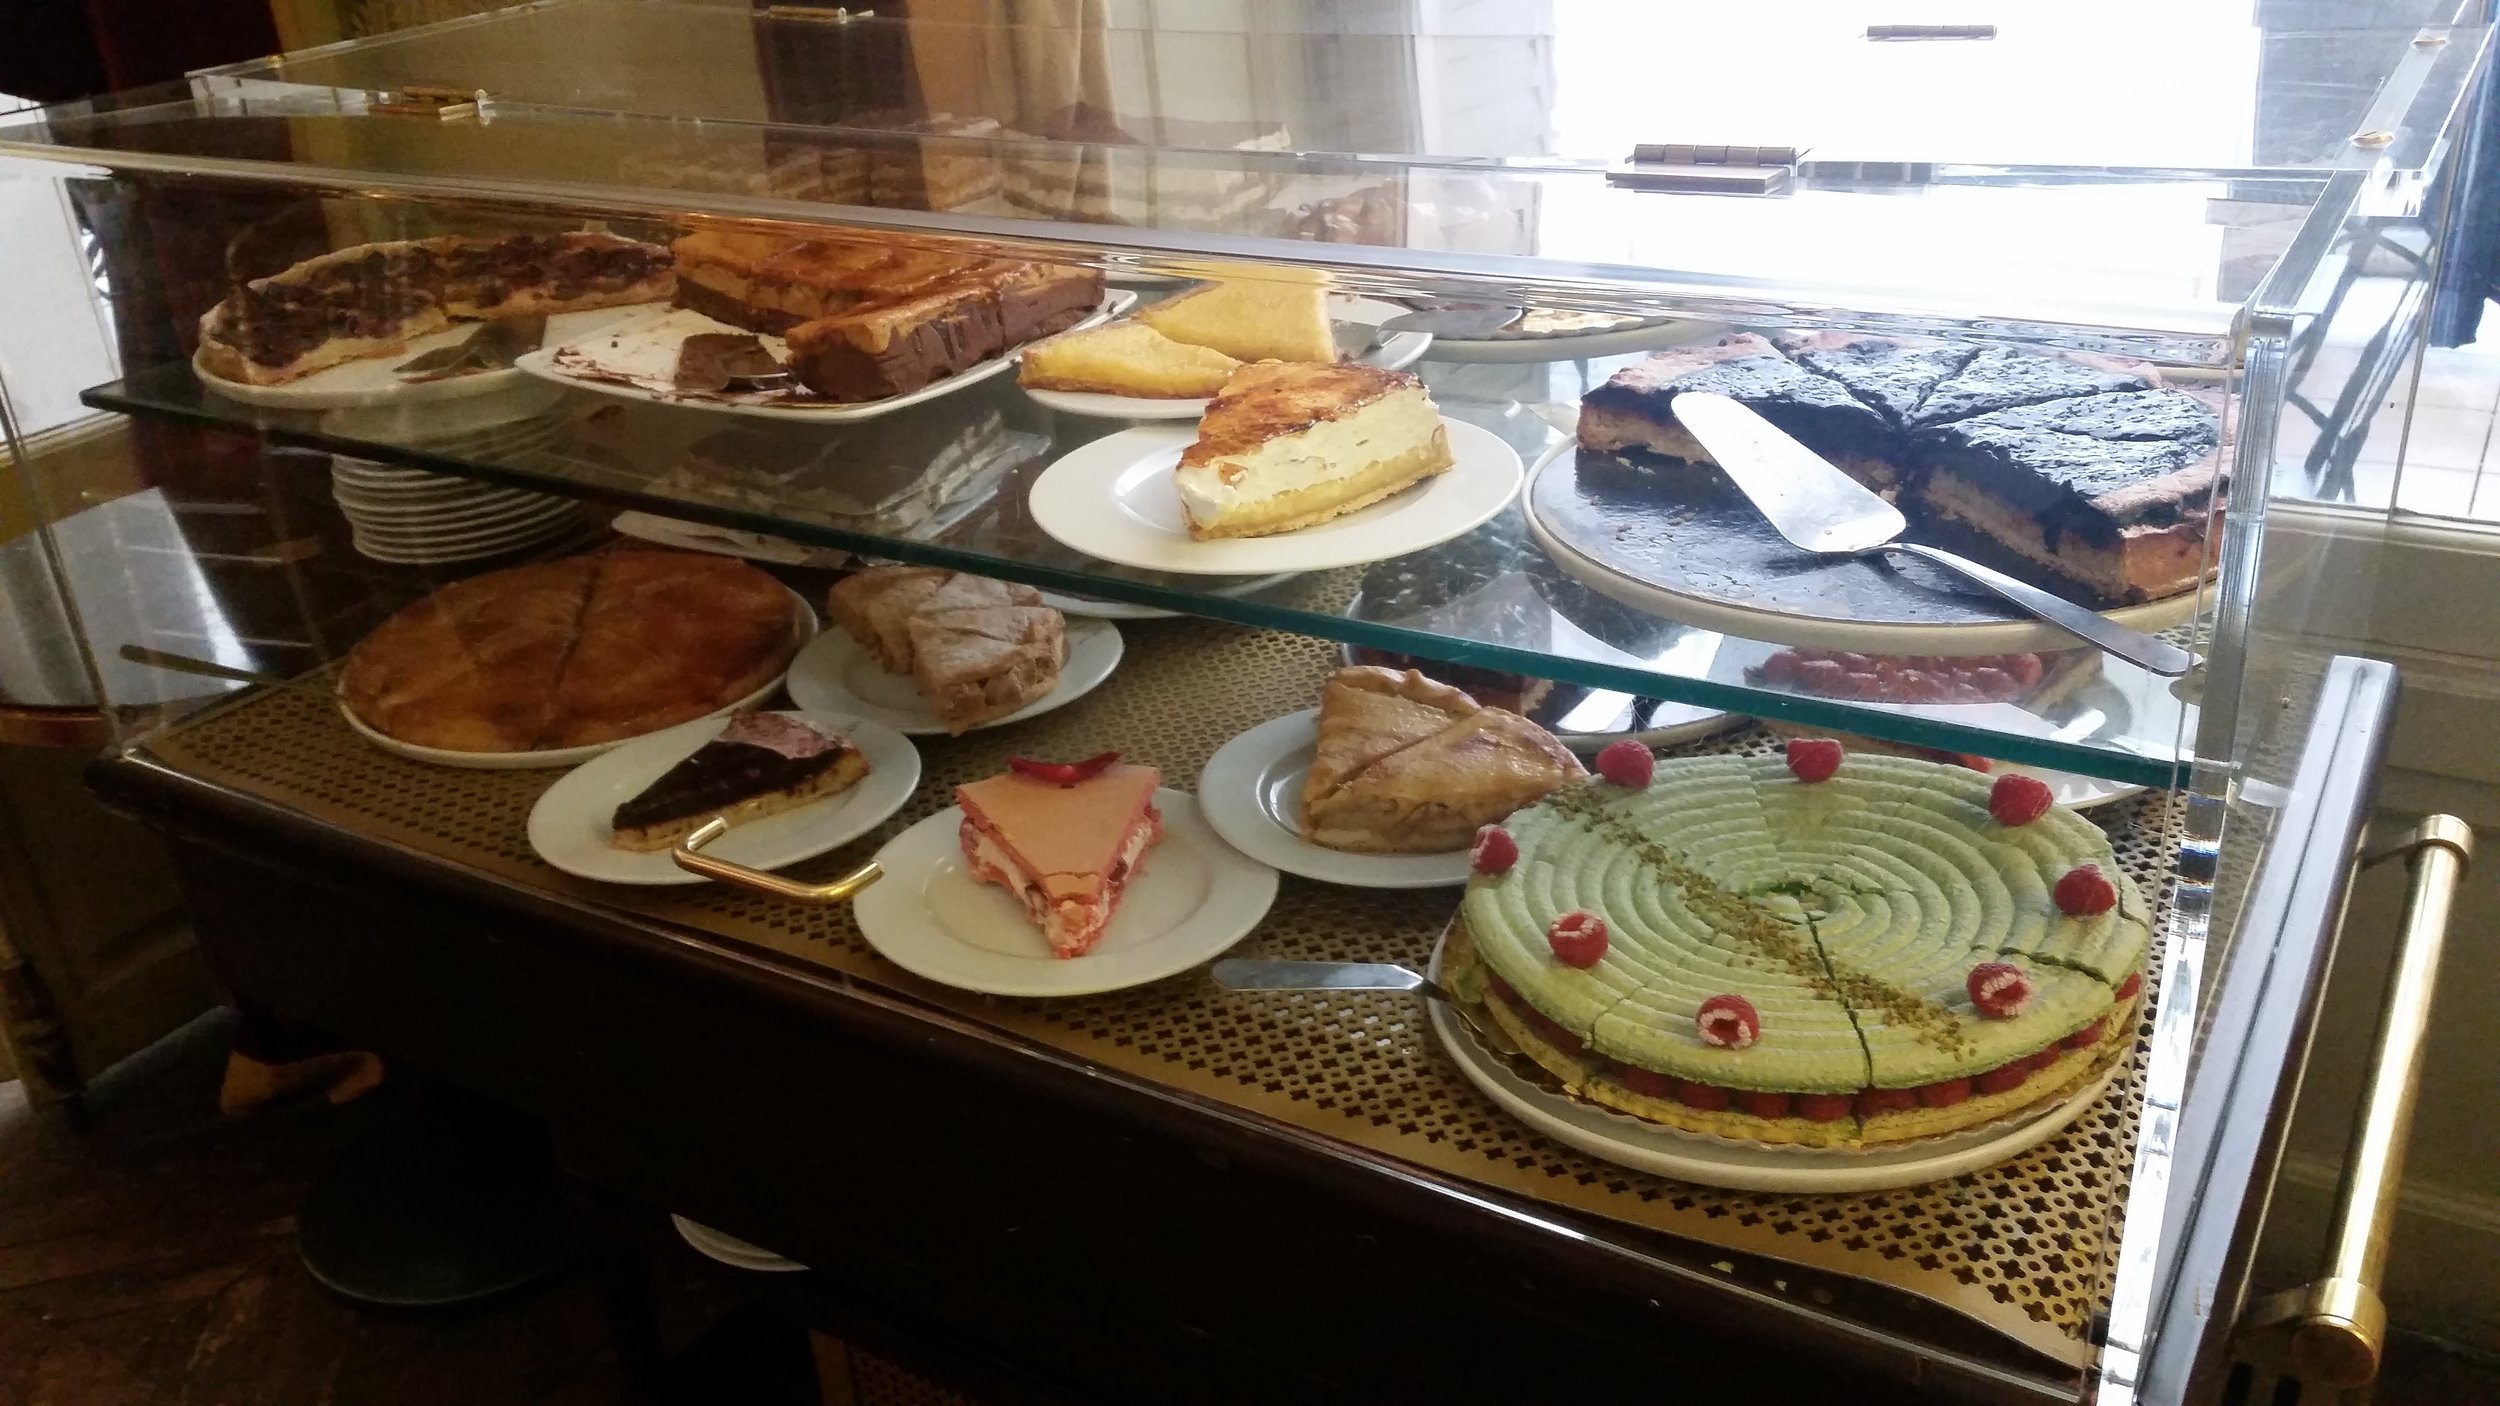 Dessert selection from the tearoom of the Musée Jacquemart-André